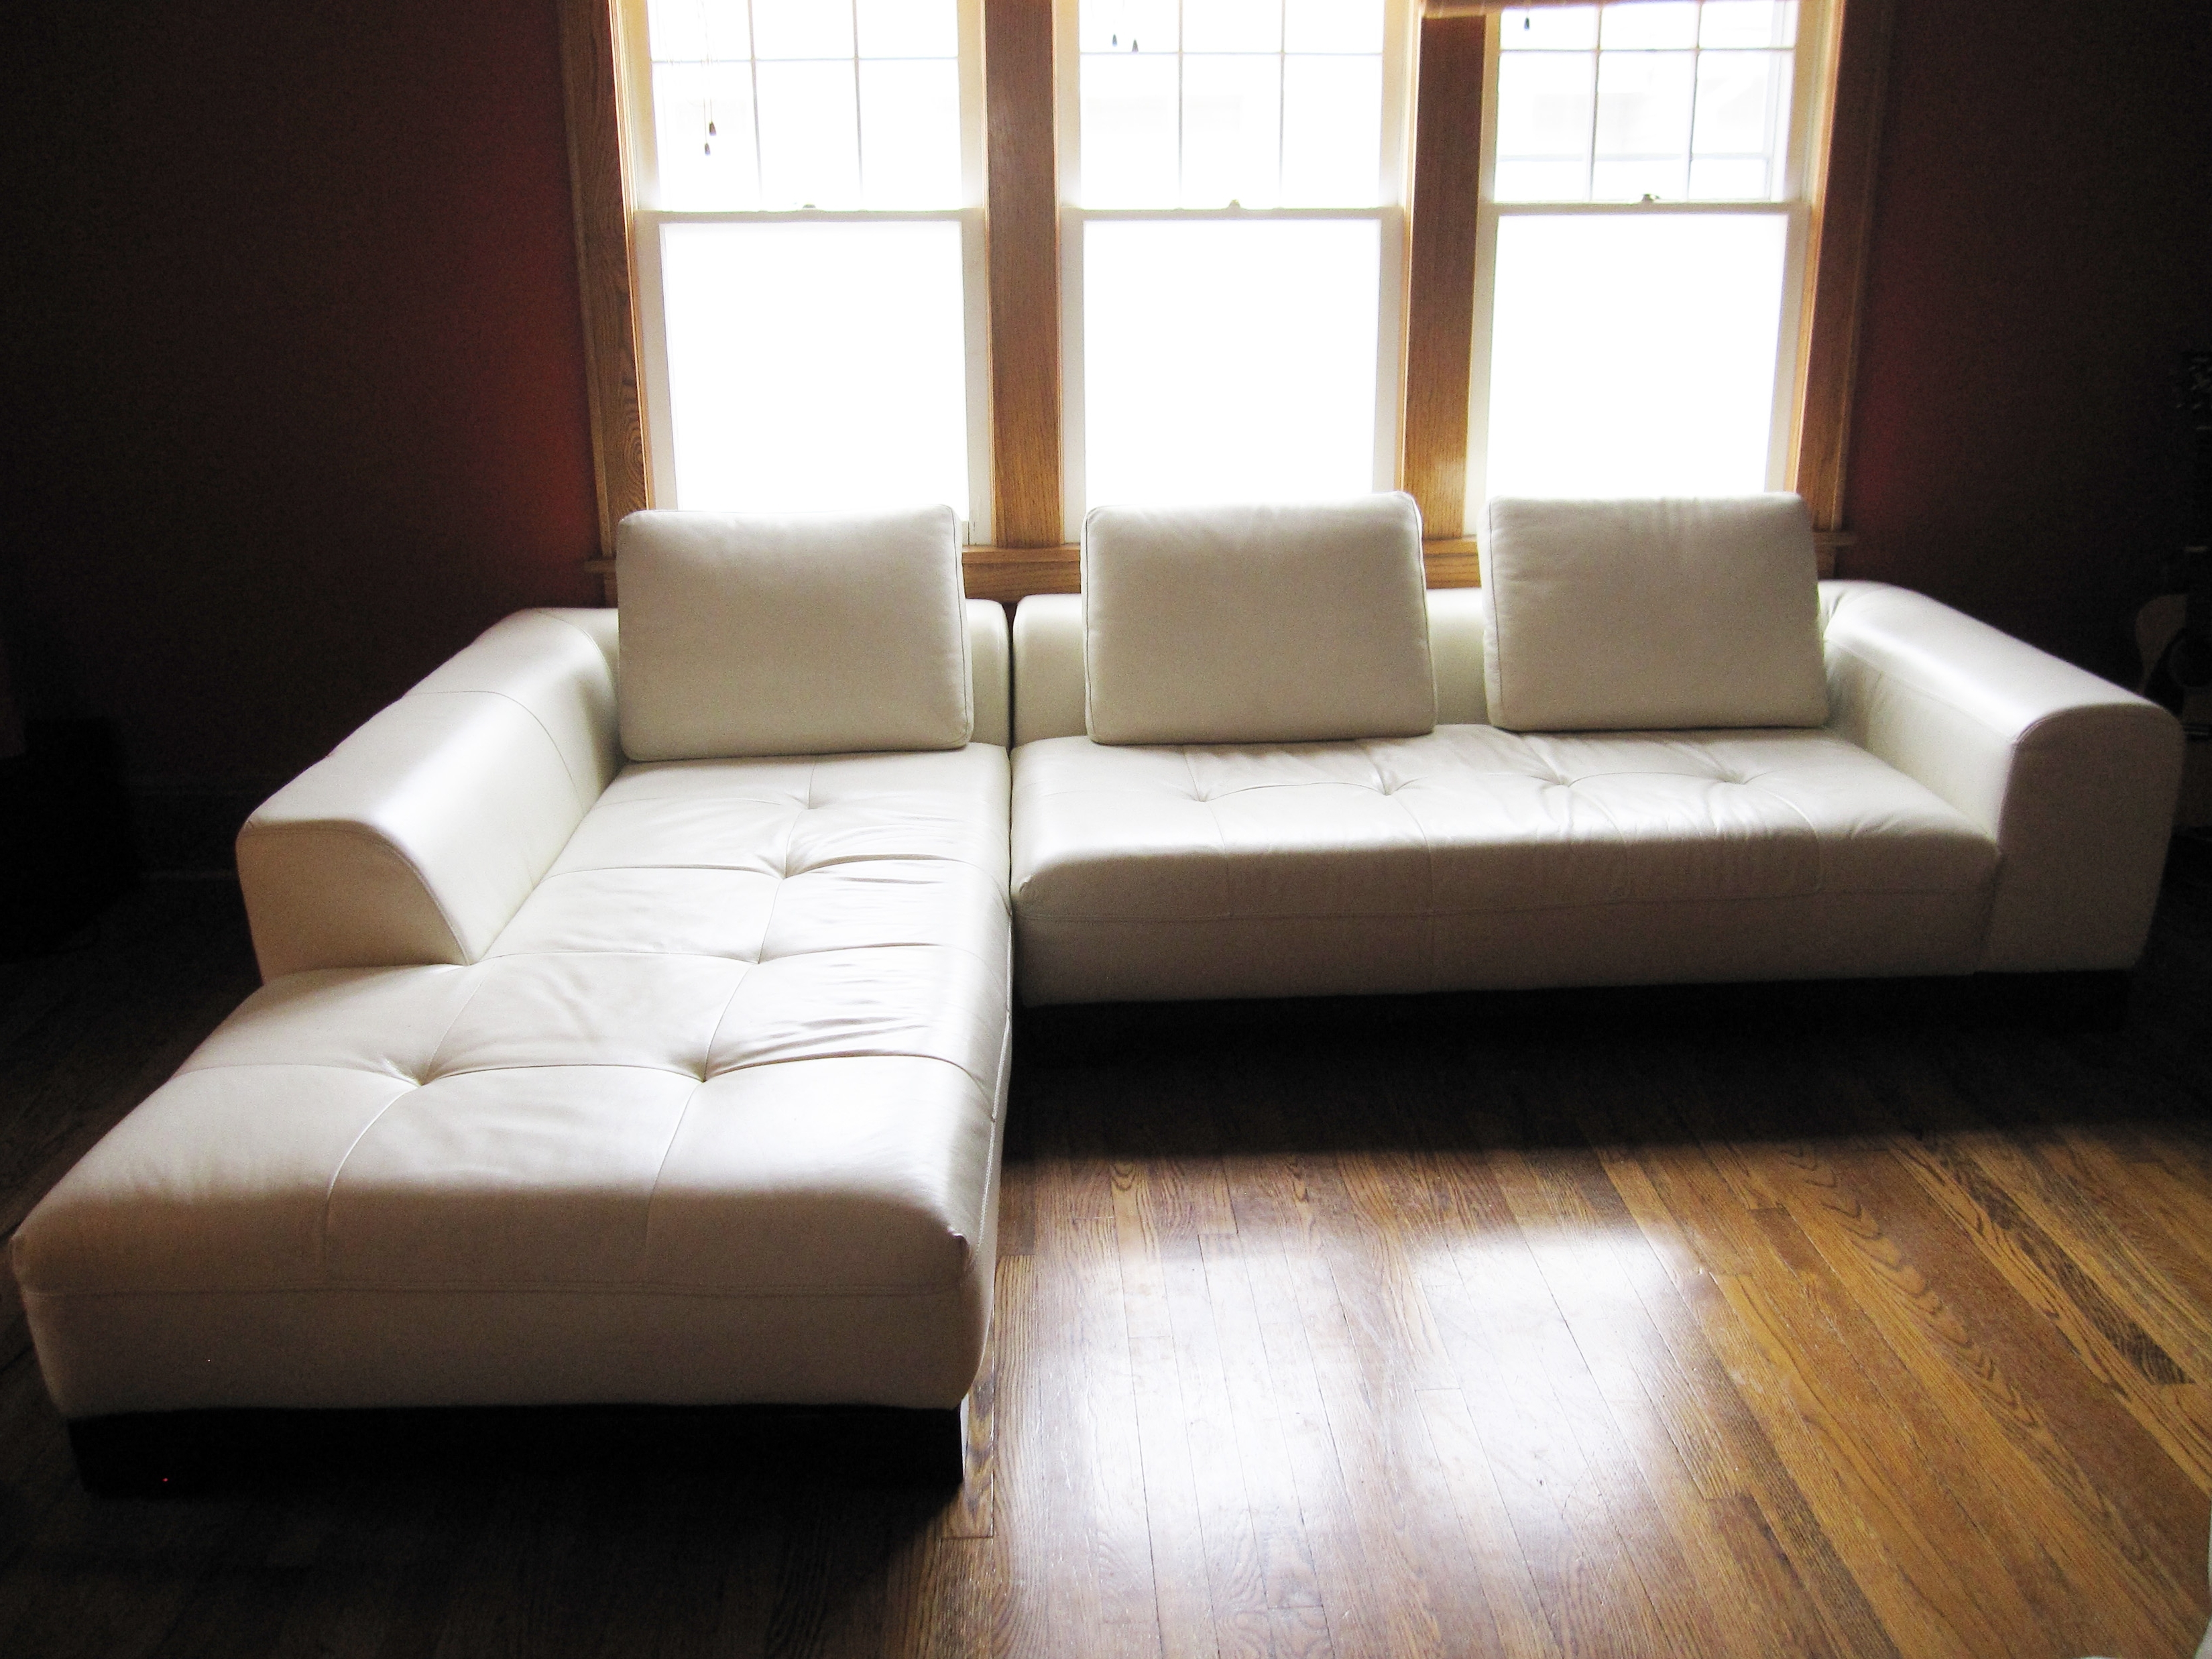 Trendy High Point Nc Sectional Sofas Inside Sofa Leatherry Sleeper Sectional Sofas For Small Spaces Furniture (View 16 of 20)